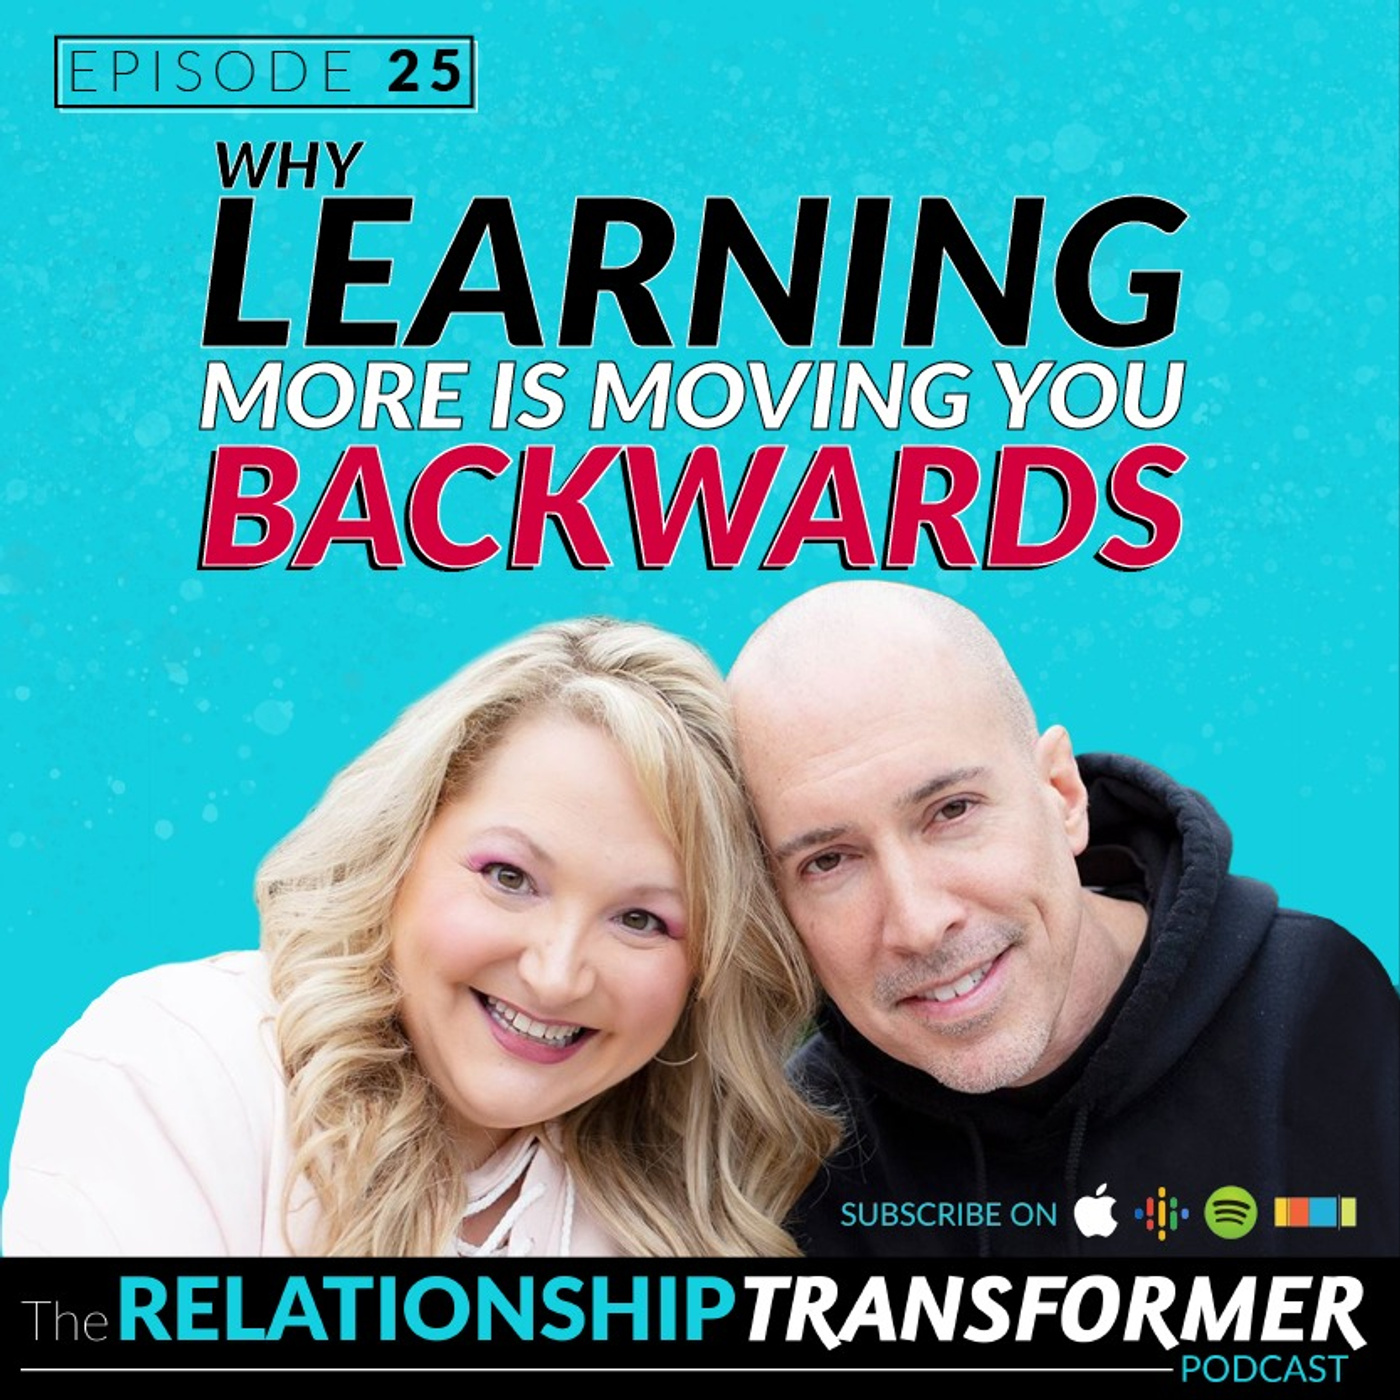 Relationship Transformers - 25: Why Learning MORE Is Moving You Backward